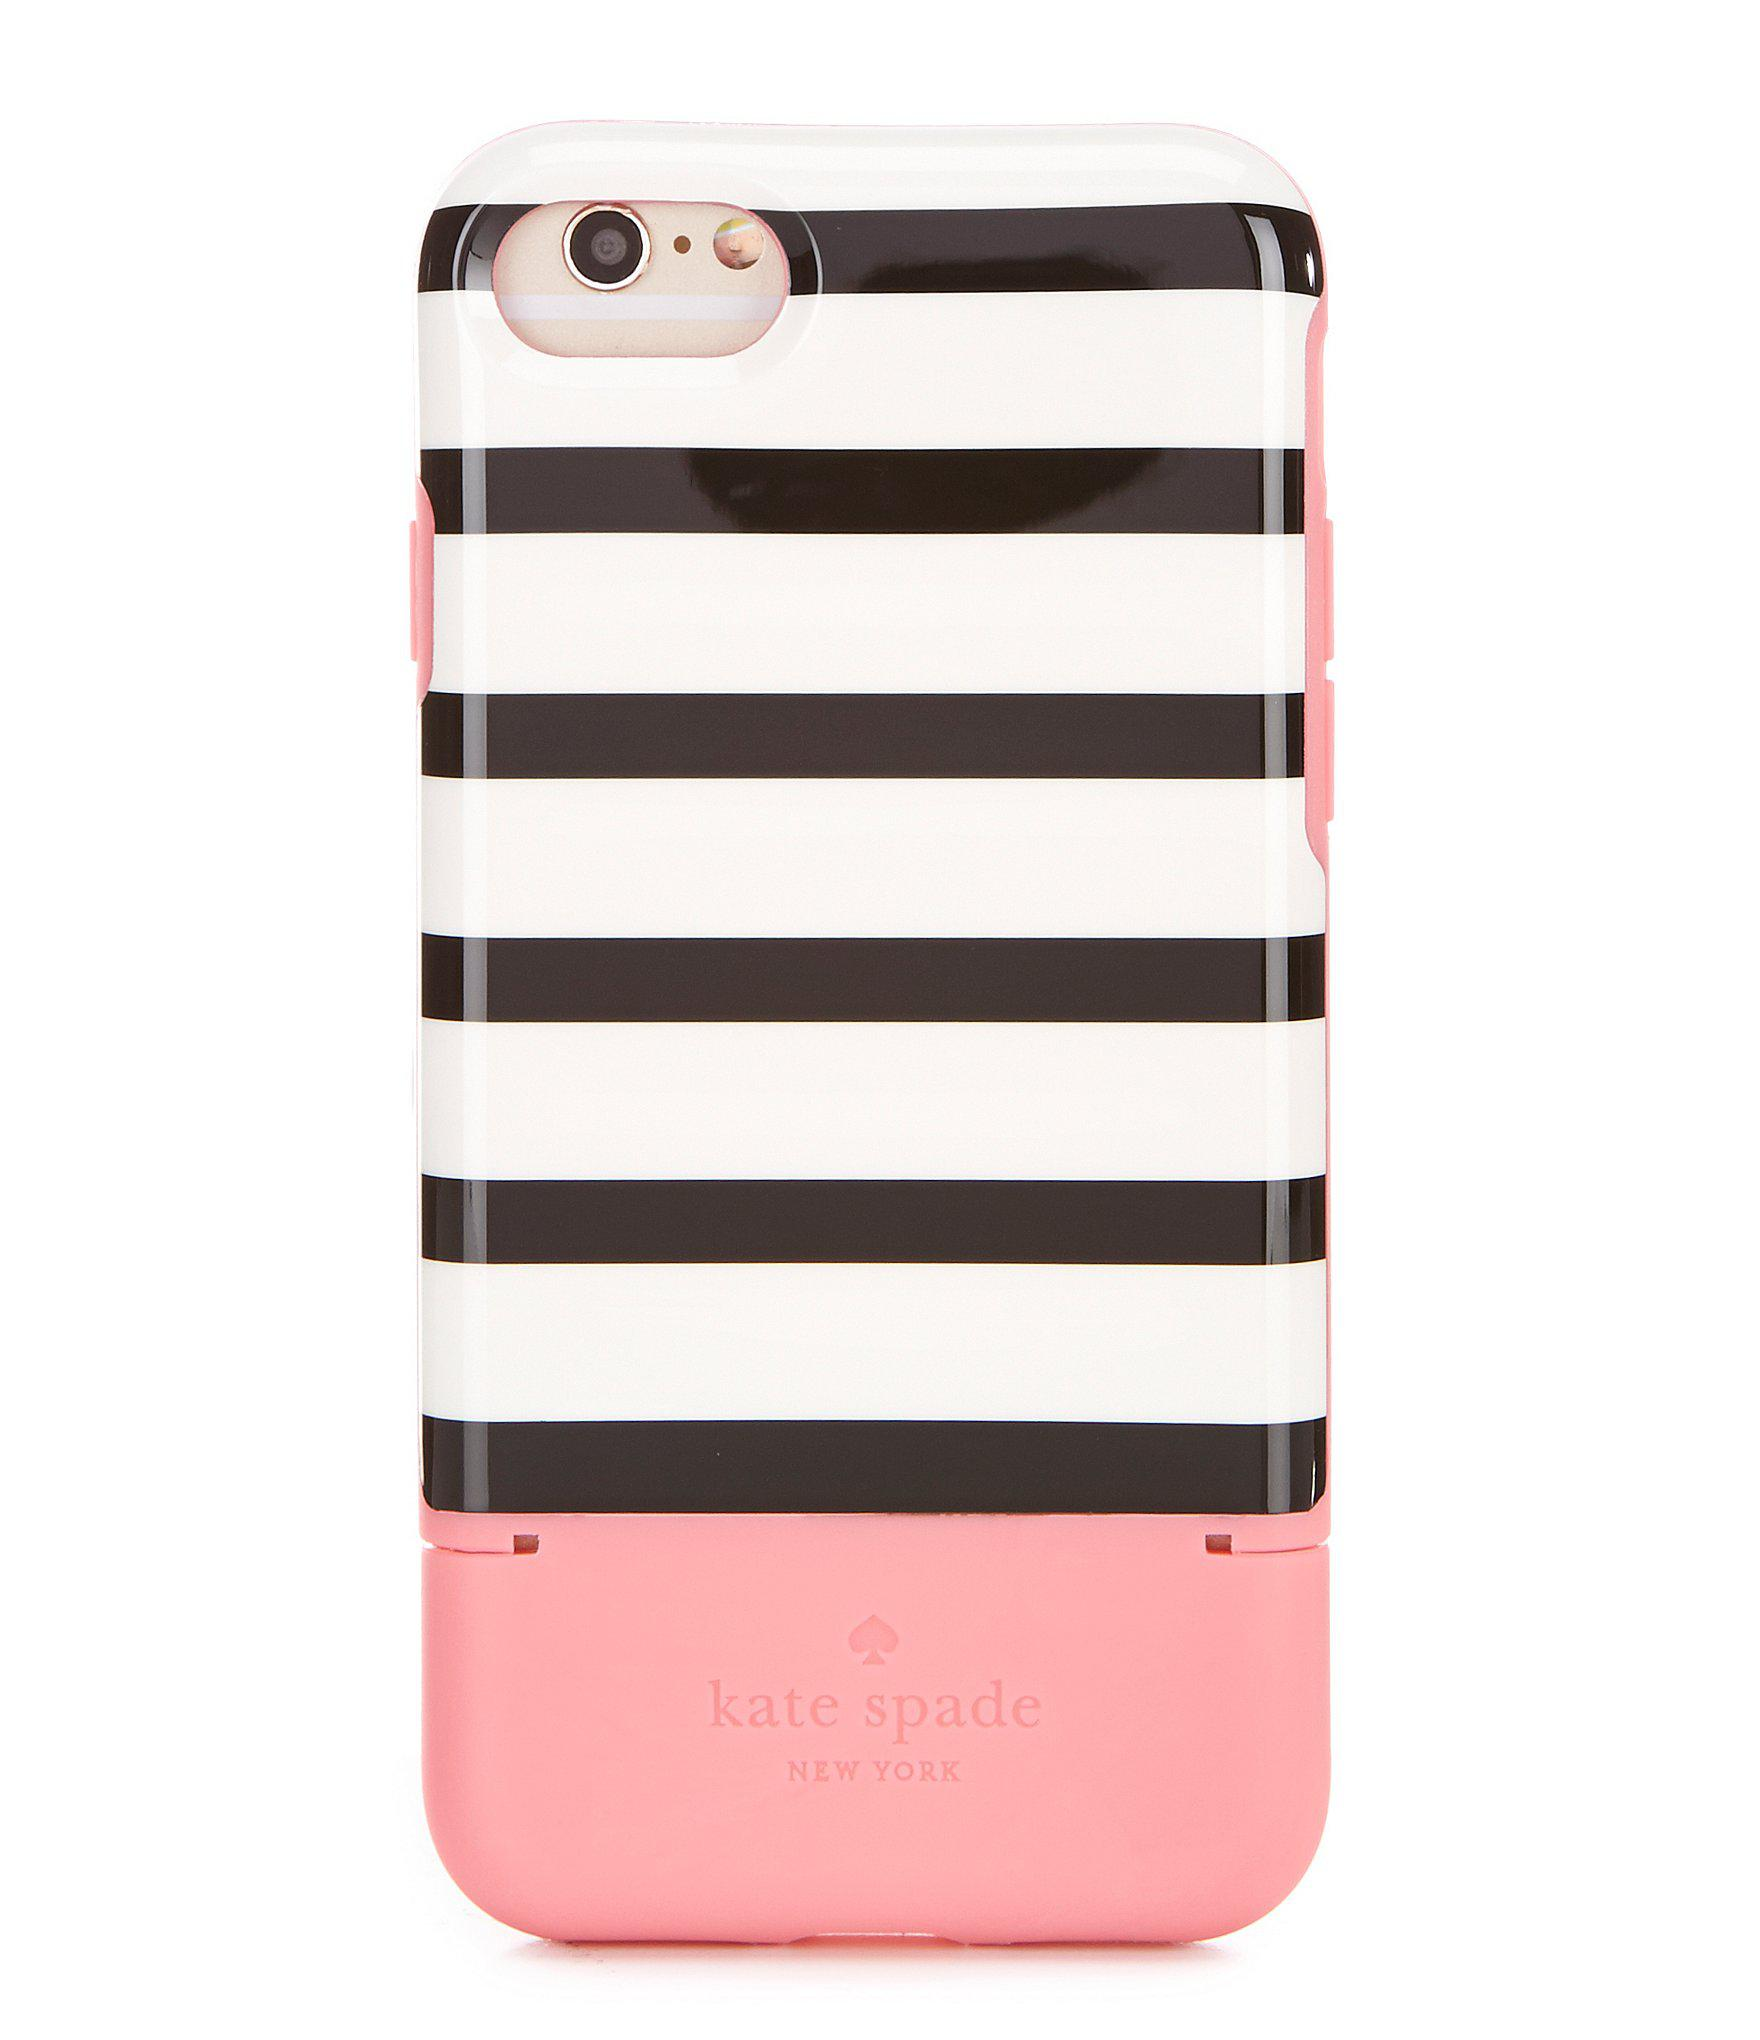 Keep The Cute Quick And Convenient Kate Spade New York Spencer Card Holder Wristlet Always Within Reach Without Need Of A Purse Cardholder Made